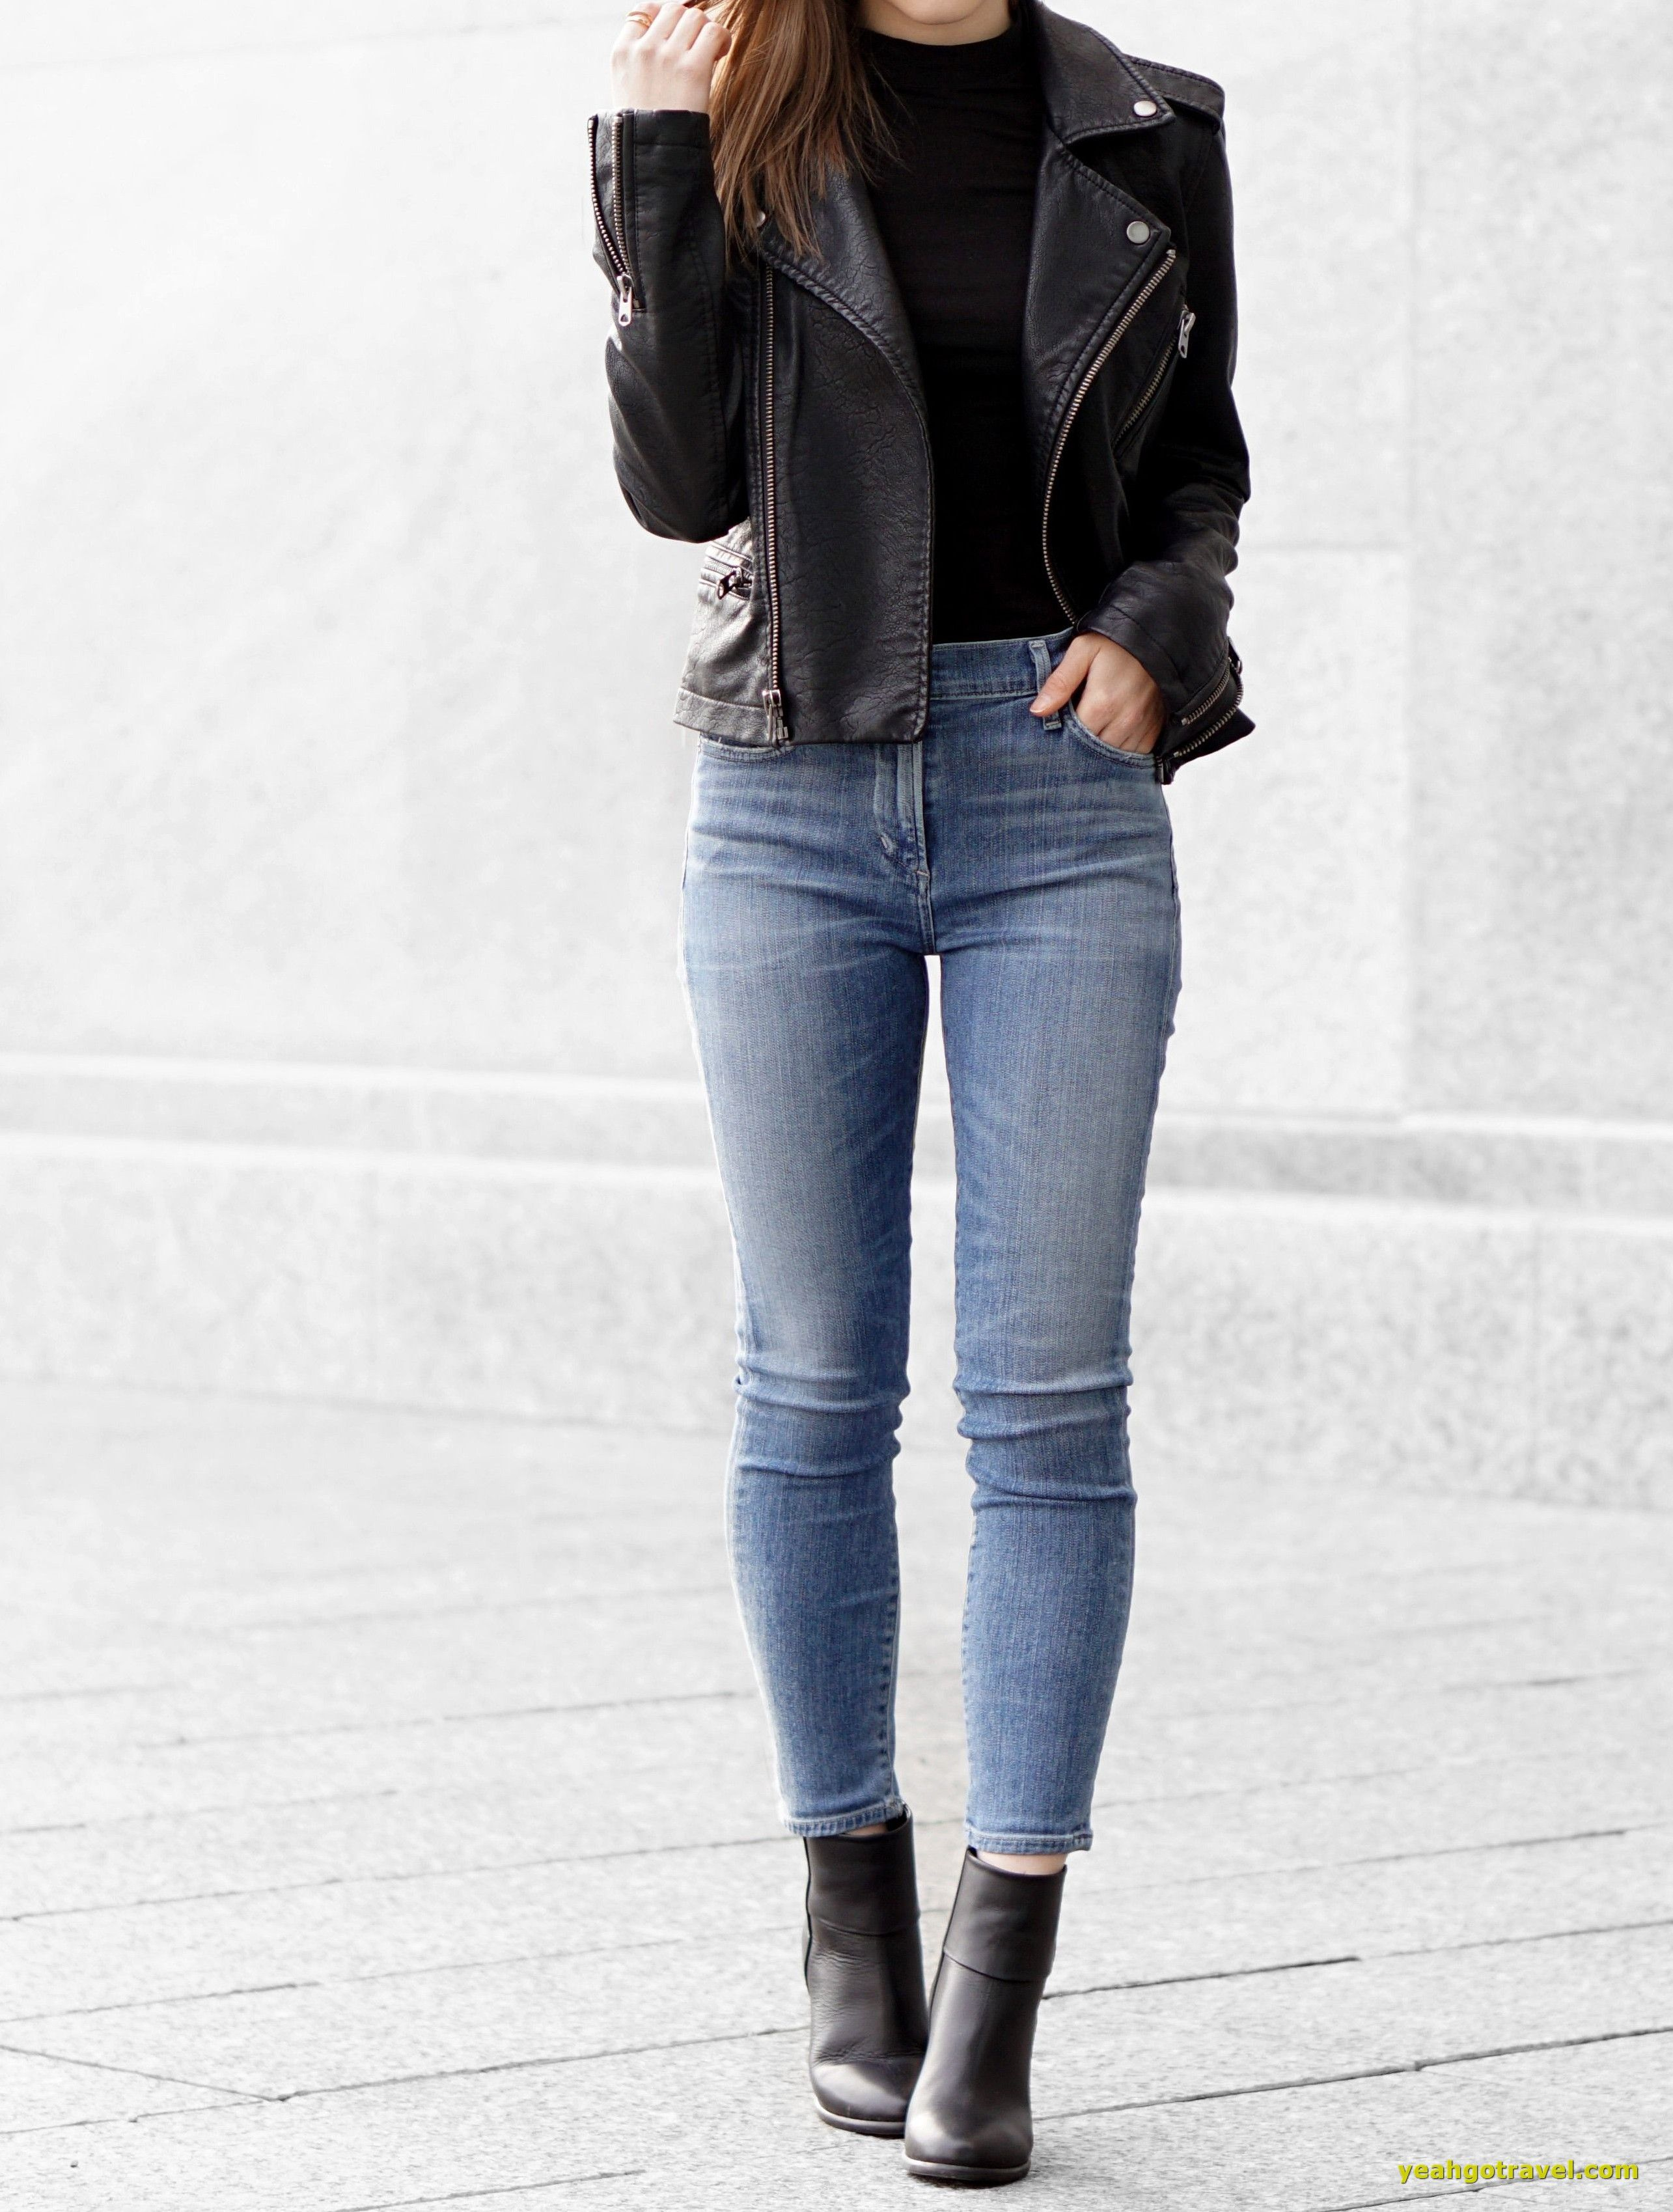 36 Women Winter Street Styles Outfits With Jackets Yeahgotravel Com Street Style Outfits Winter Fashion Leather Jacket Outfits [ 3398 x 2570 Pixel ]